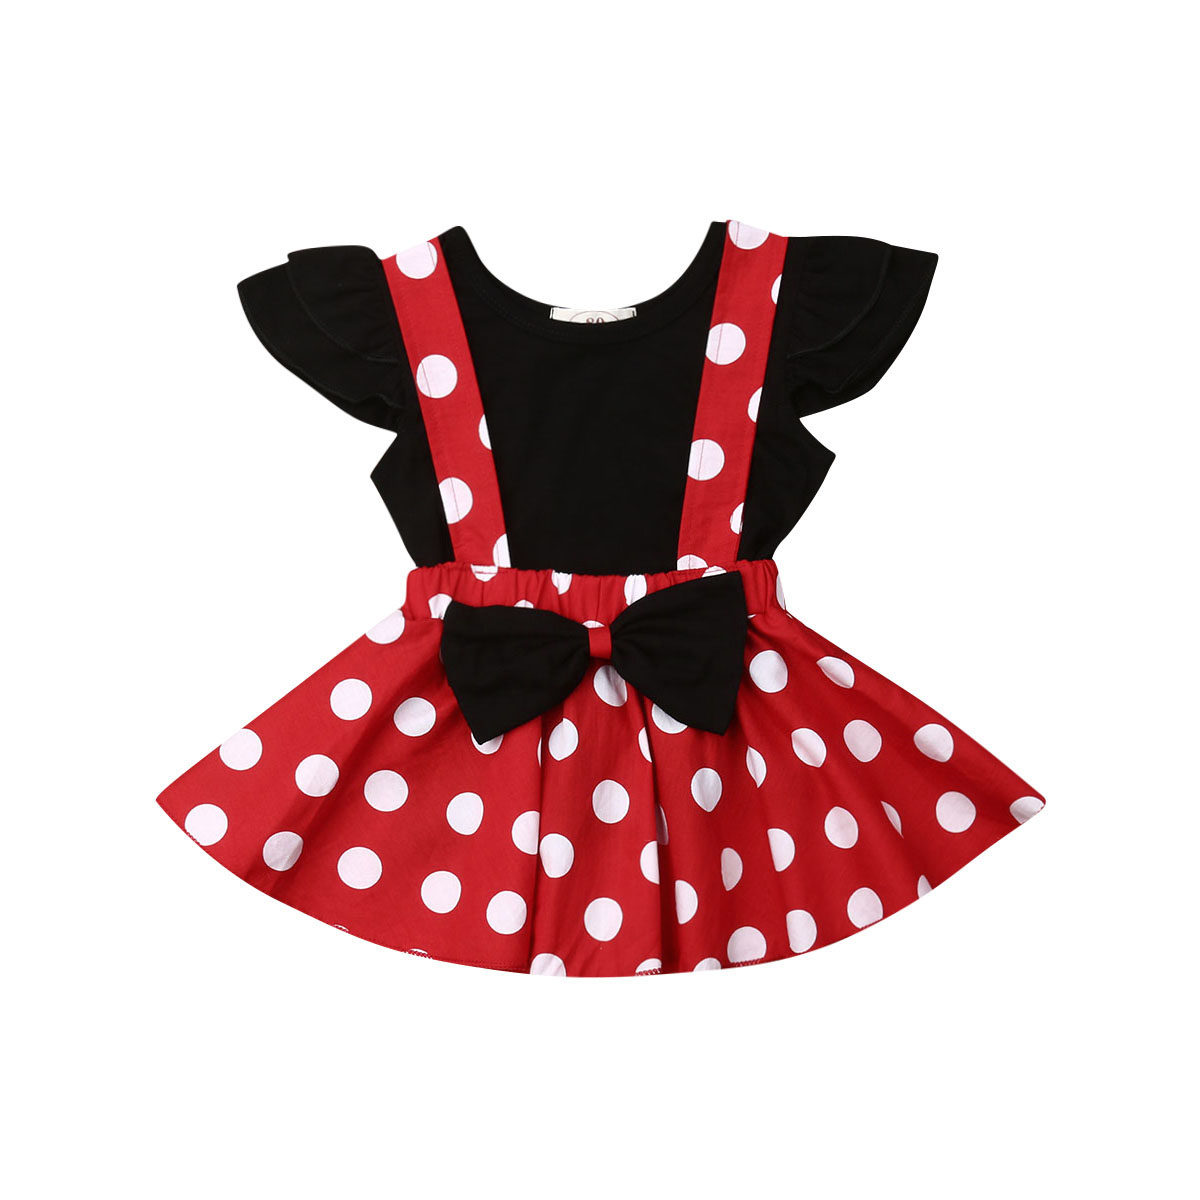 2020 Summer Girls Clothes Toddler Baby Girls Kids Short Sleeve T-Shirt Polka Dot Suspender Skirts Outfit Clothing